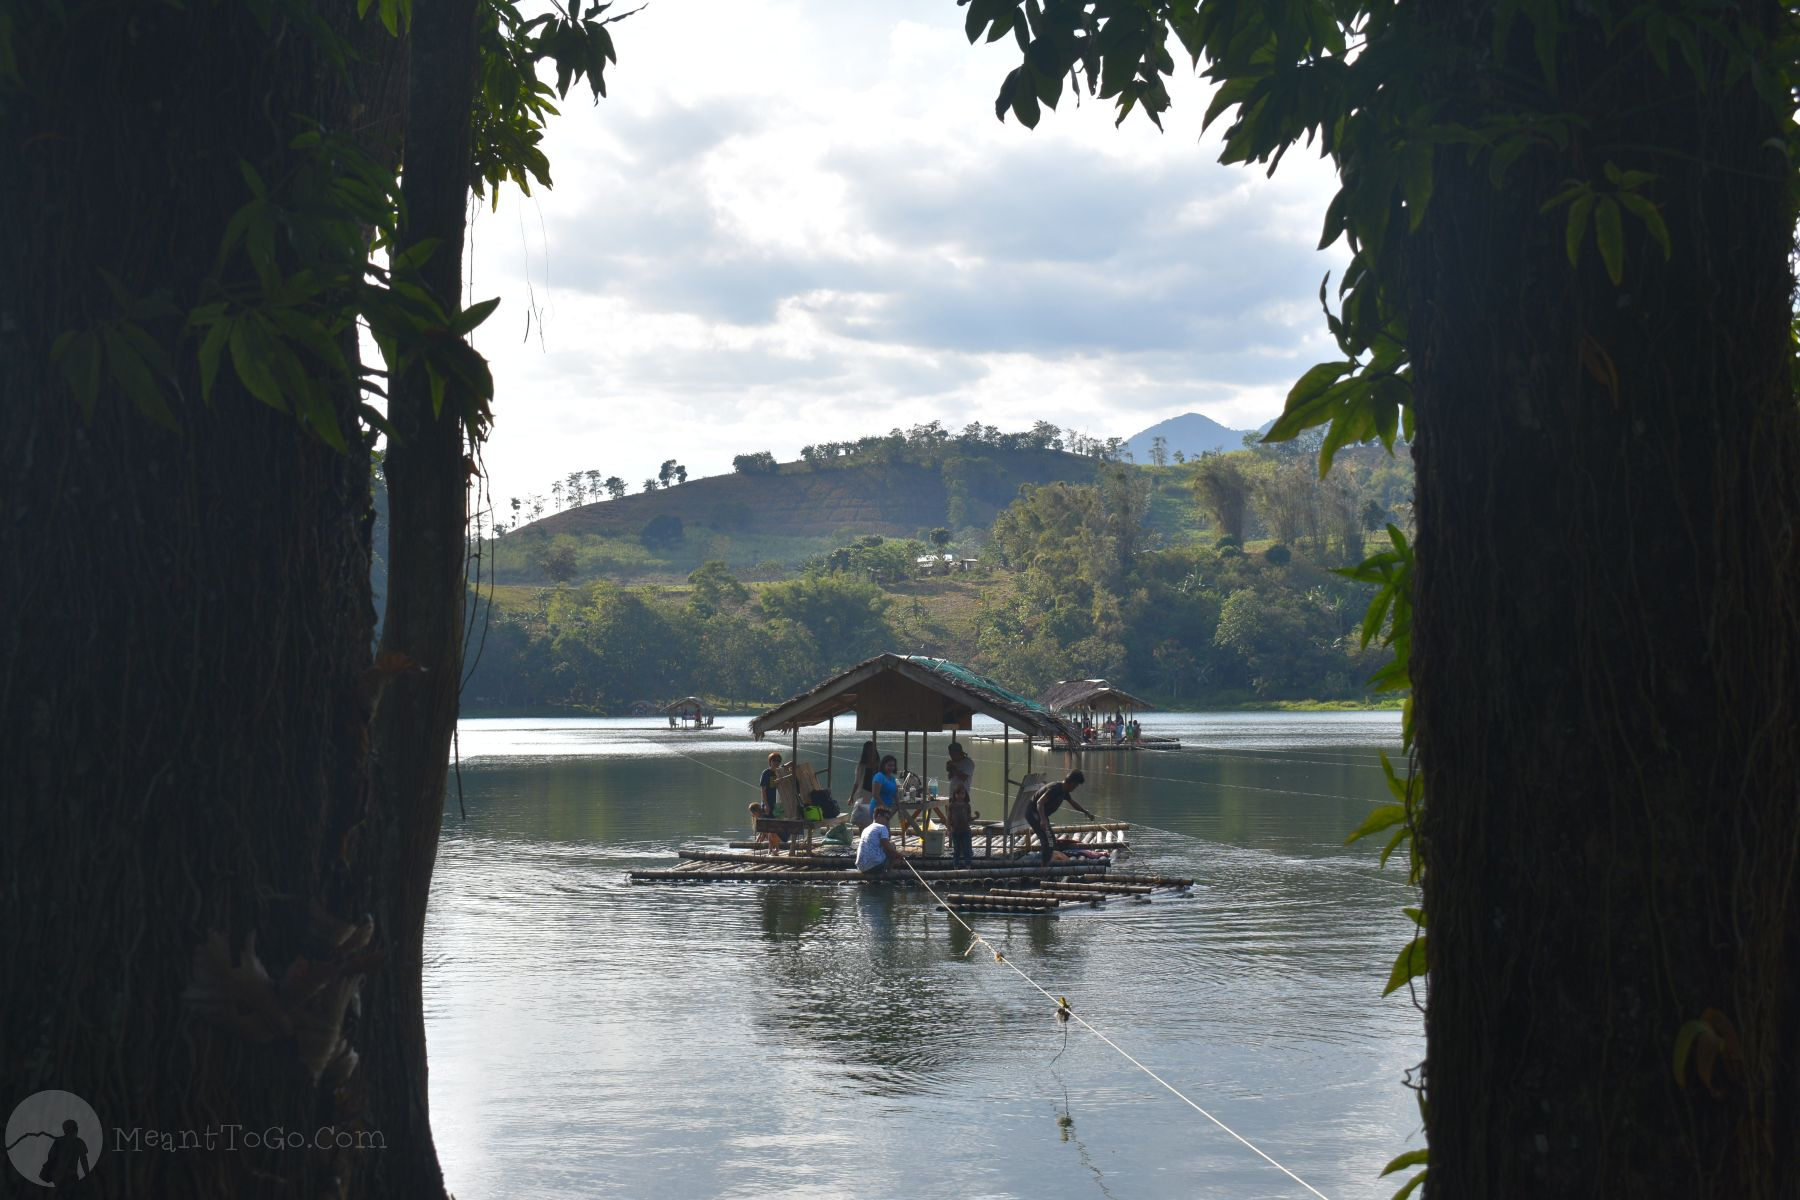 Lake Apo - Valencia City, Bukidnon